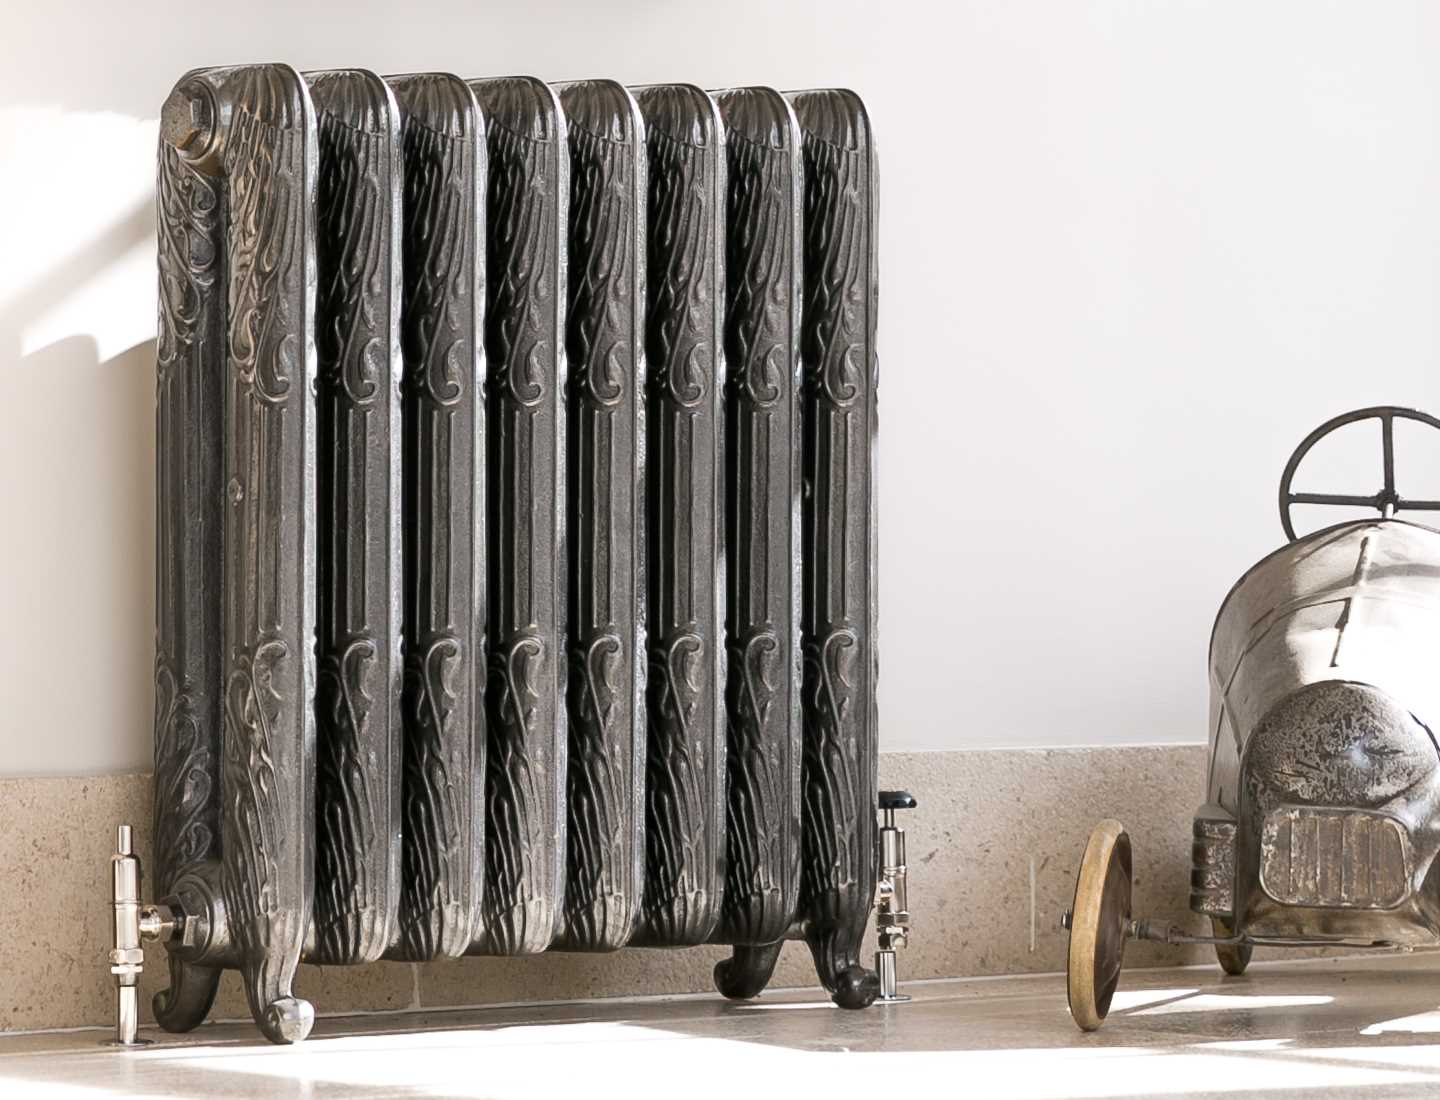 Peacock hand burnished cast iron radiator